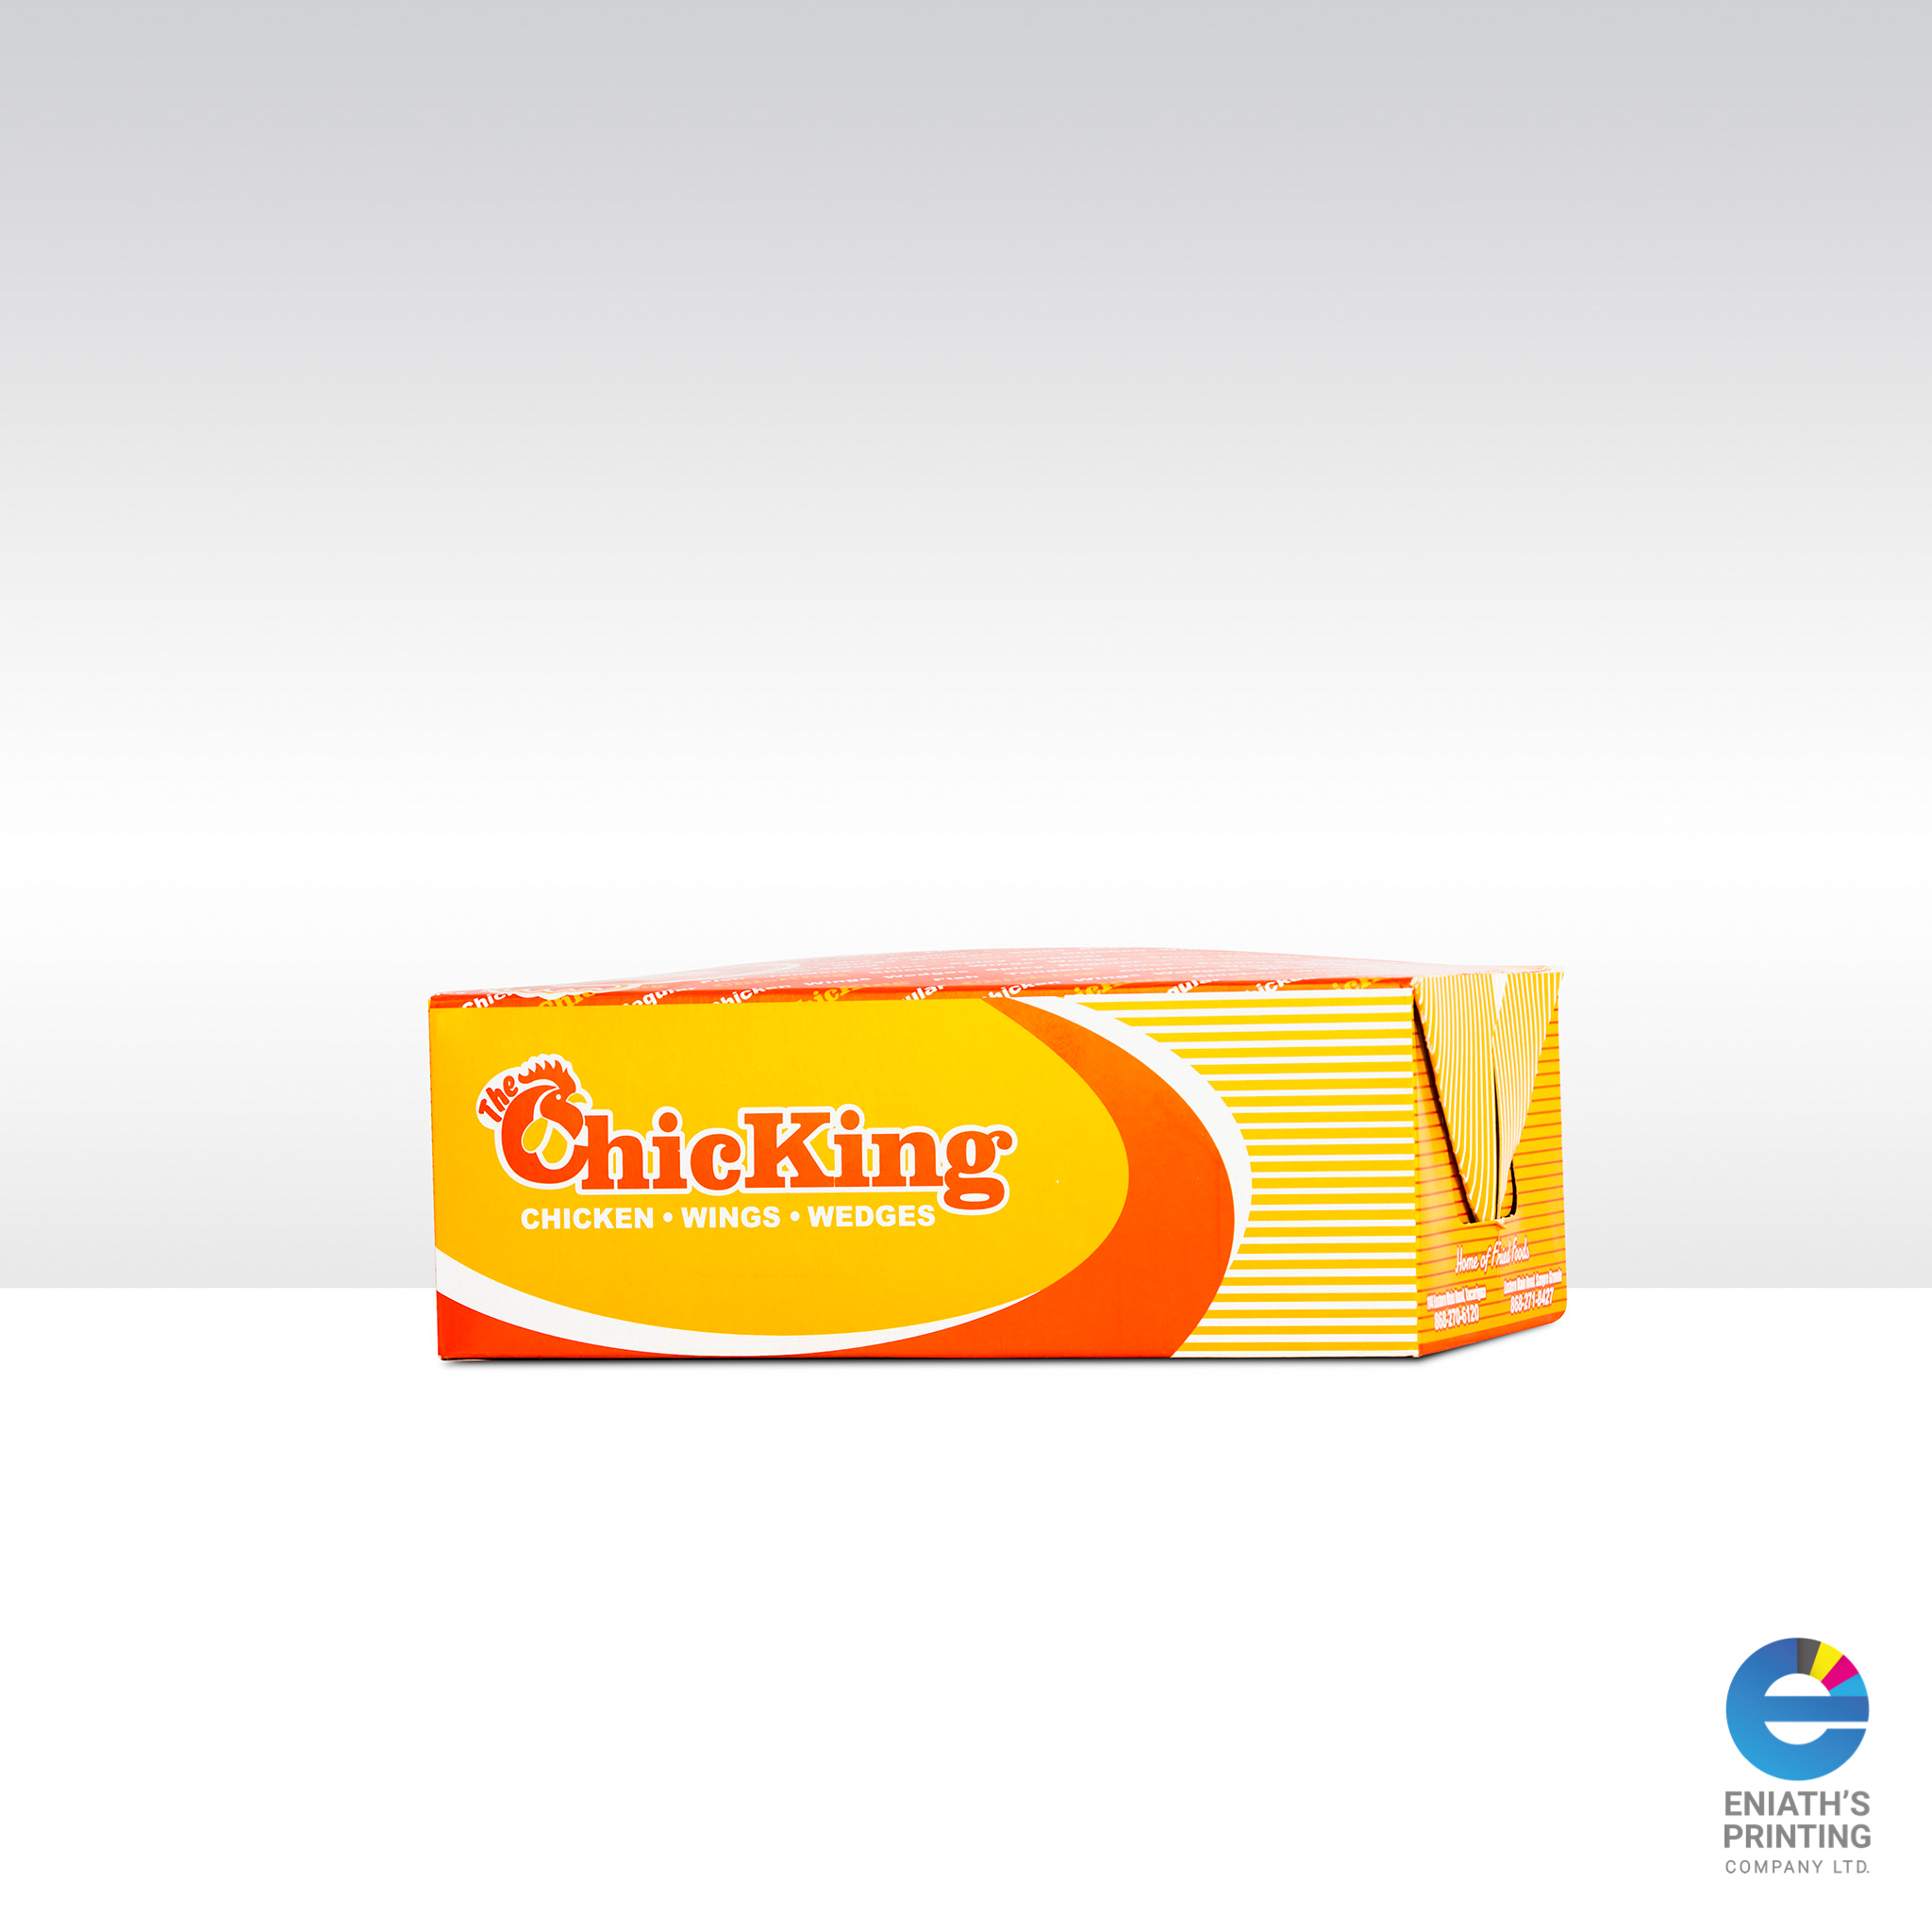 ChicKing Packaging - Printed by Eniath's Printing Co. Ltd.